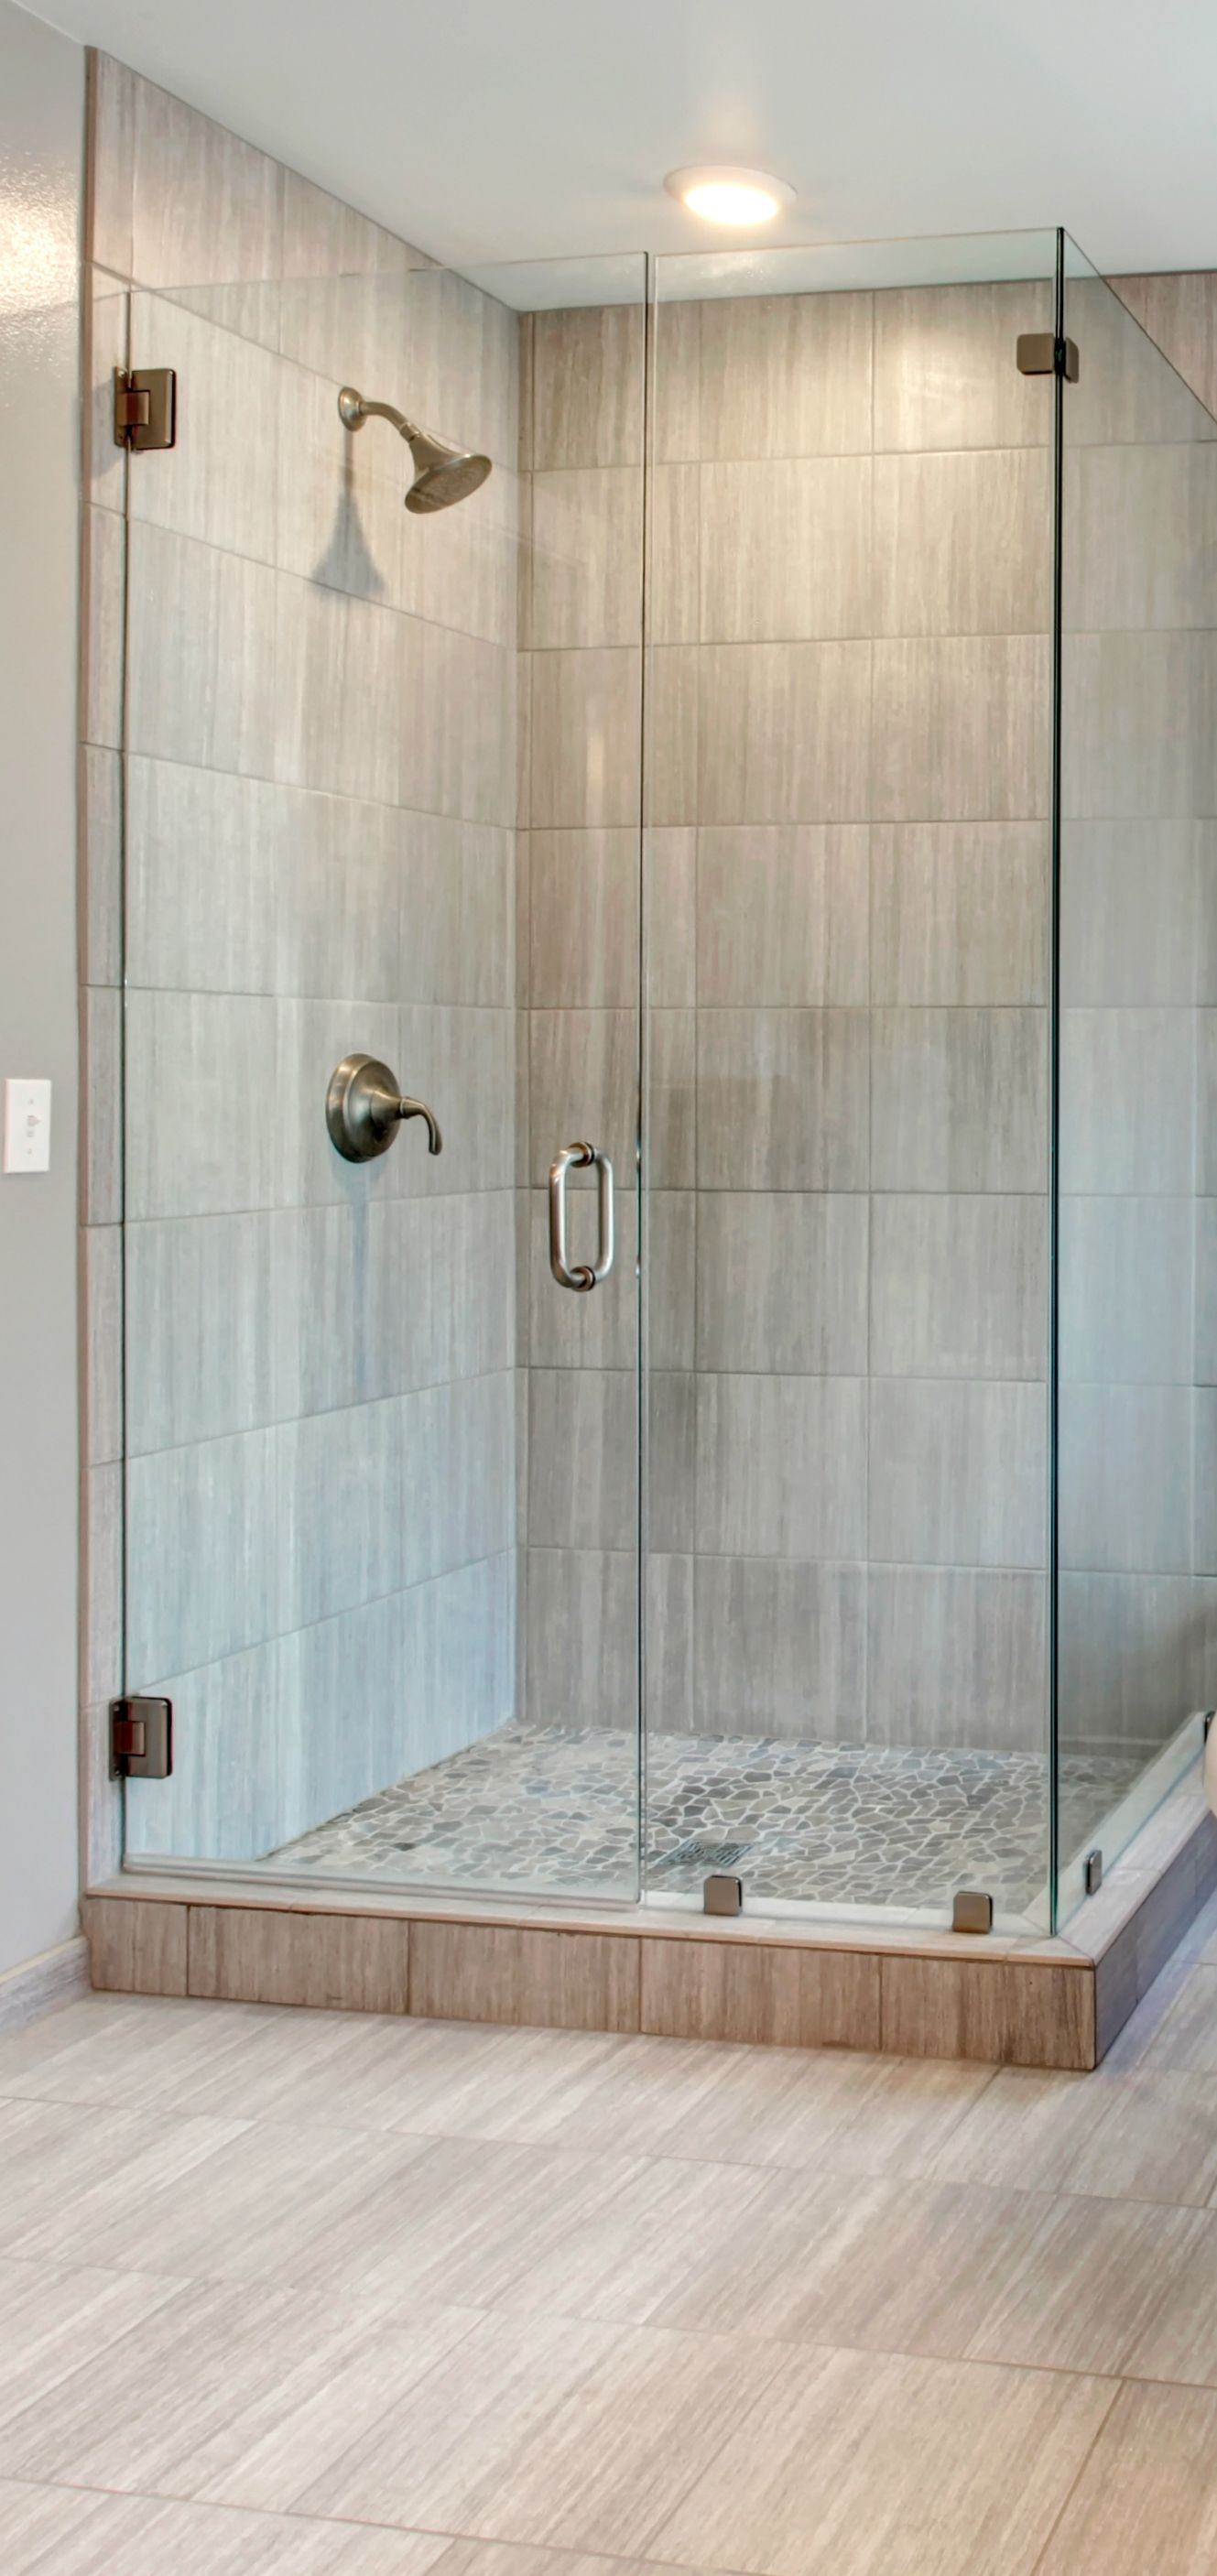 Showers Corner Walk In Shower Ideas For Simple Small Bathroom With Natural Stone Bathroom Remodel Shower Bathroom Shower Stalls Small Bathroom Remodel Designs